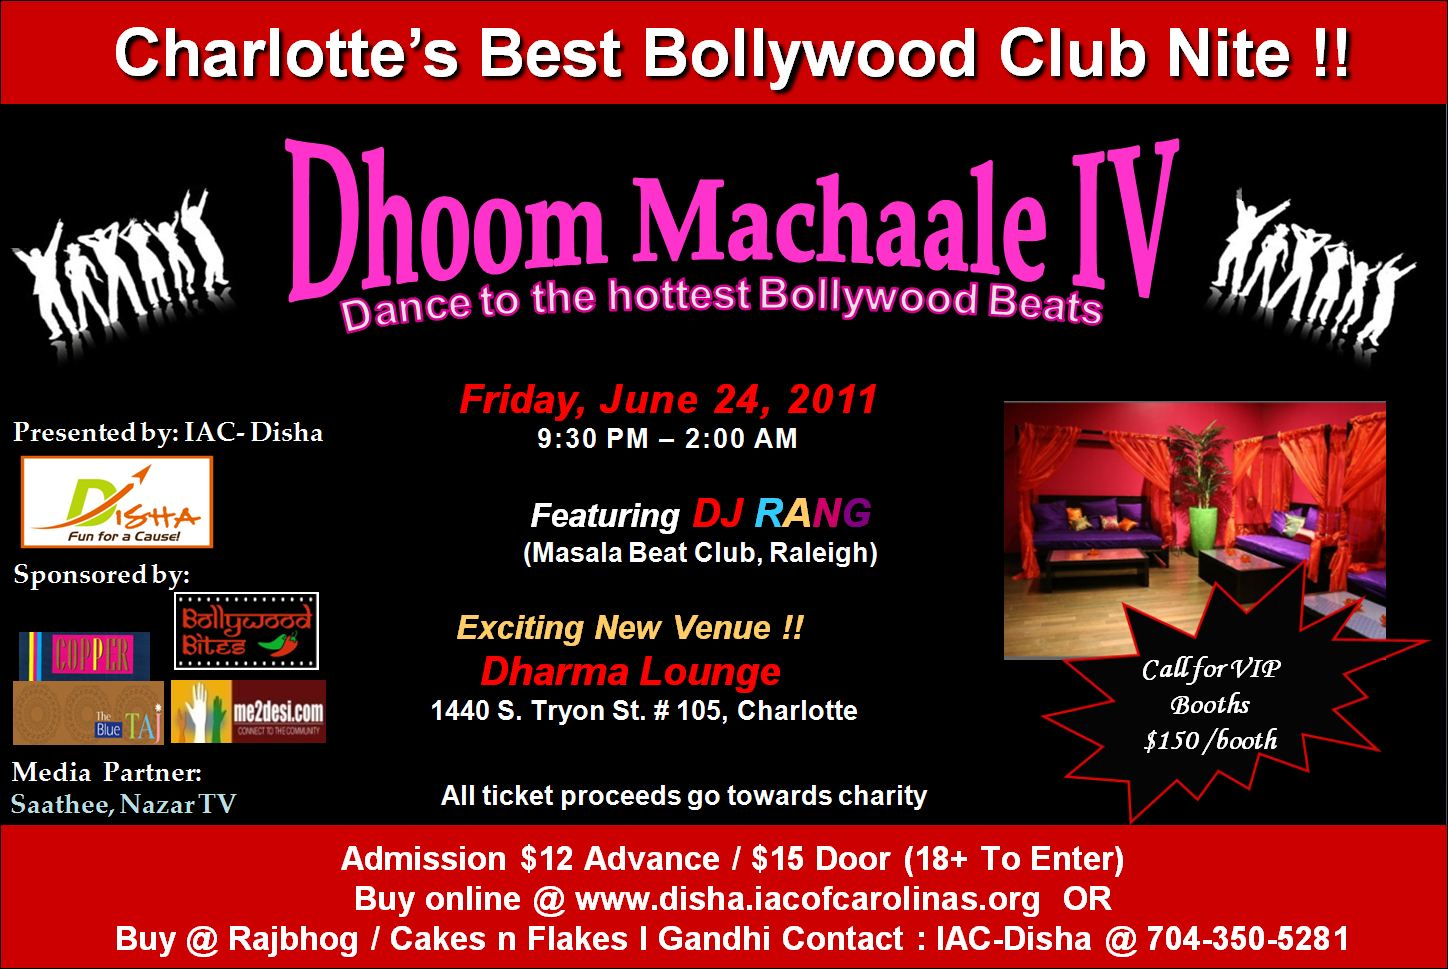 Flyer from Dhoom Machaale IV